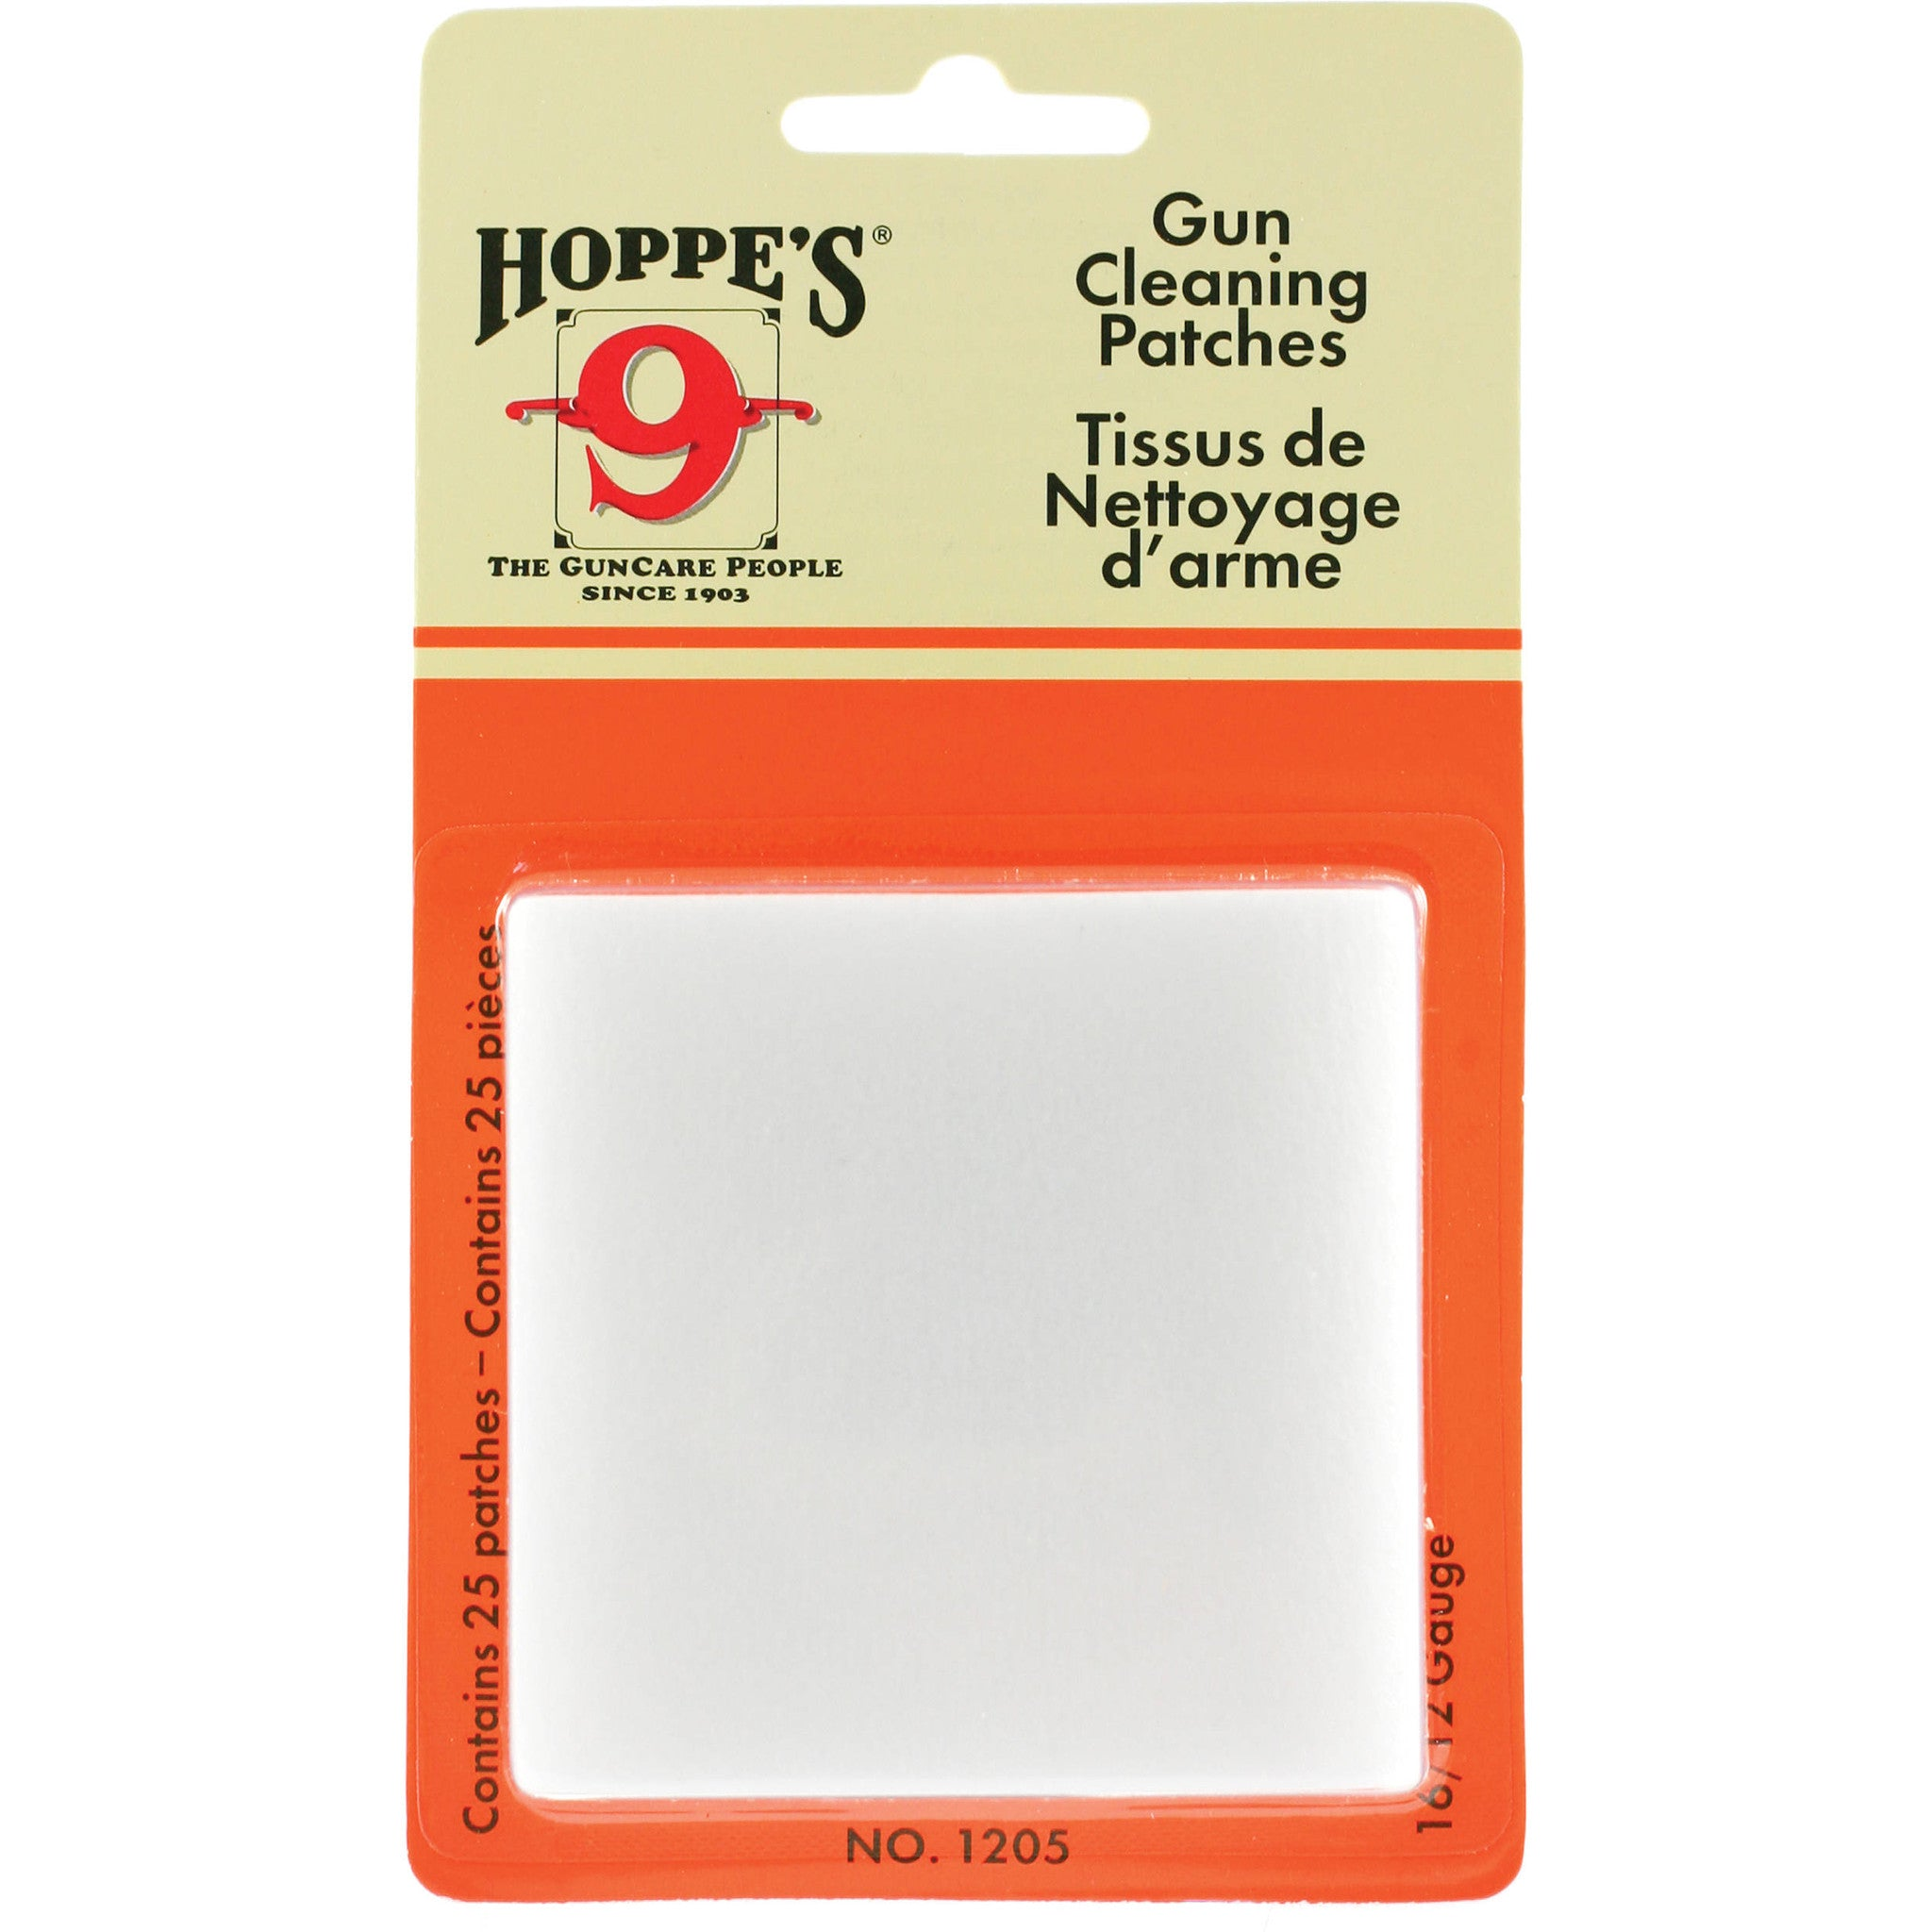 Hopes gun cleaning patch-High Falls Outfitters